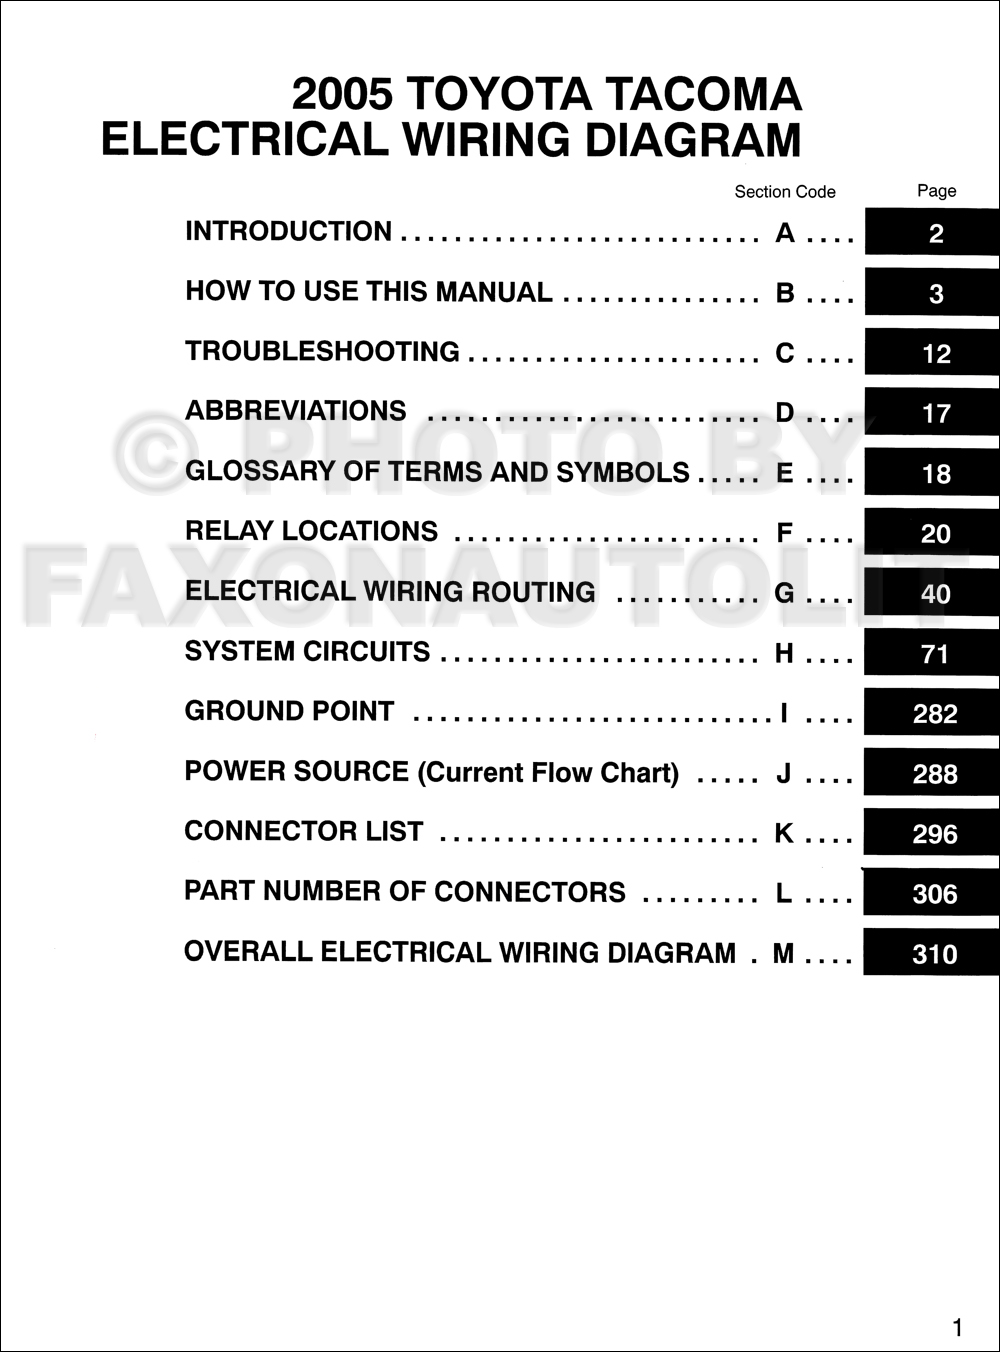 2005ToyotaTacomaOWD TOC 2005 toyota tacoma pickup wiring diagram manual original Tacoma Body Parts Diagram at aneh.co